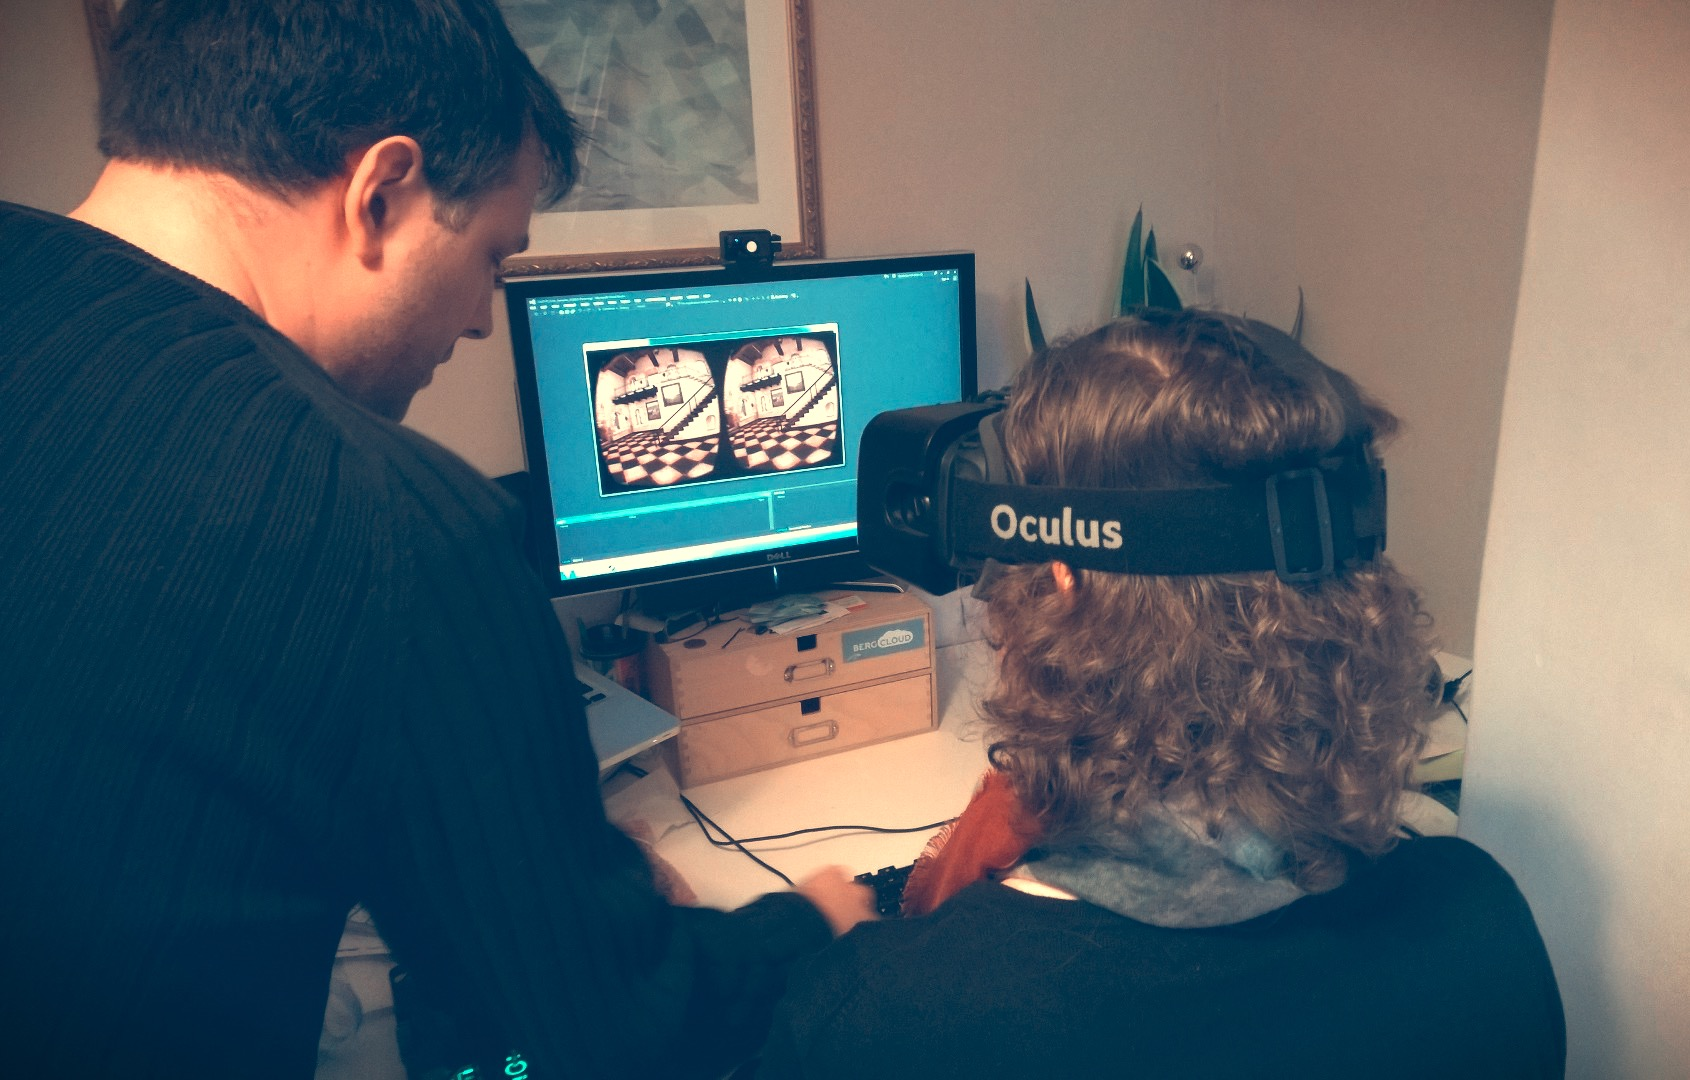 Nick guiding Laura through the Oculus Rift demos.